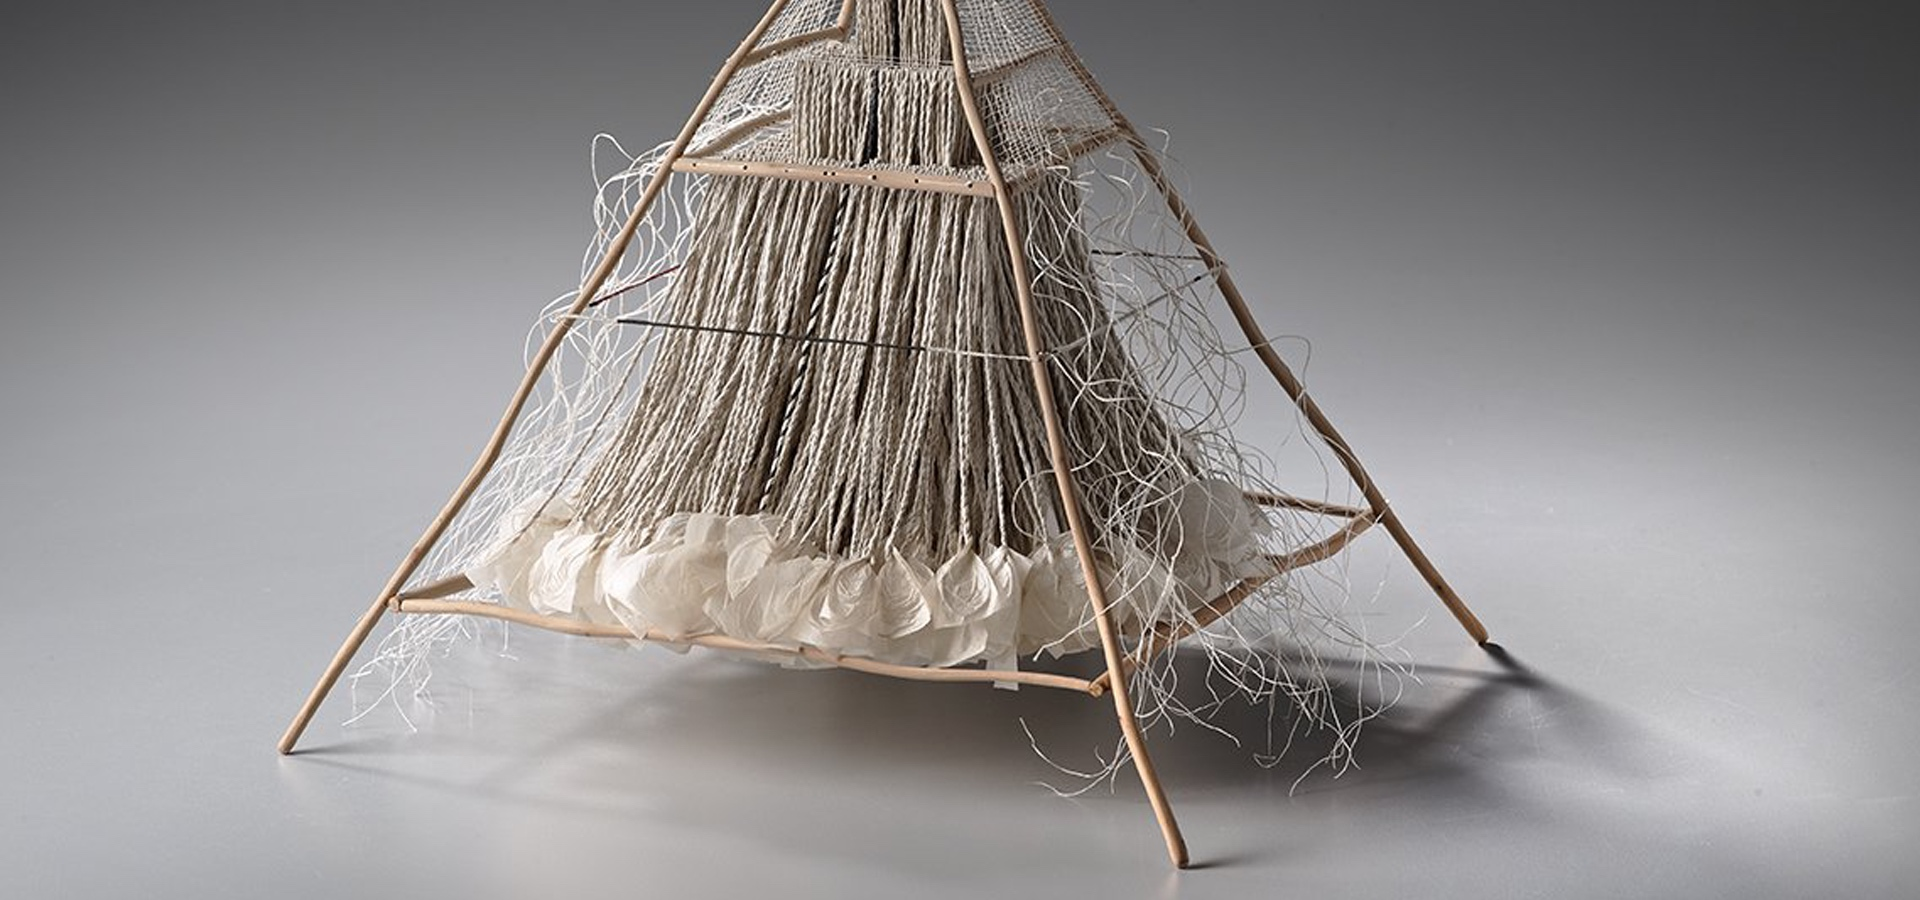 Pyramid sculpture made with wood and twine